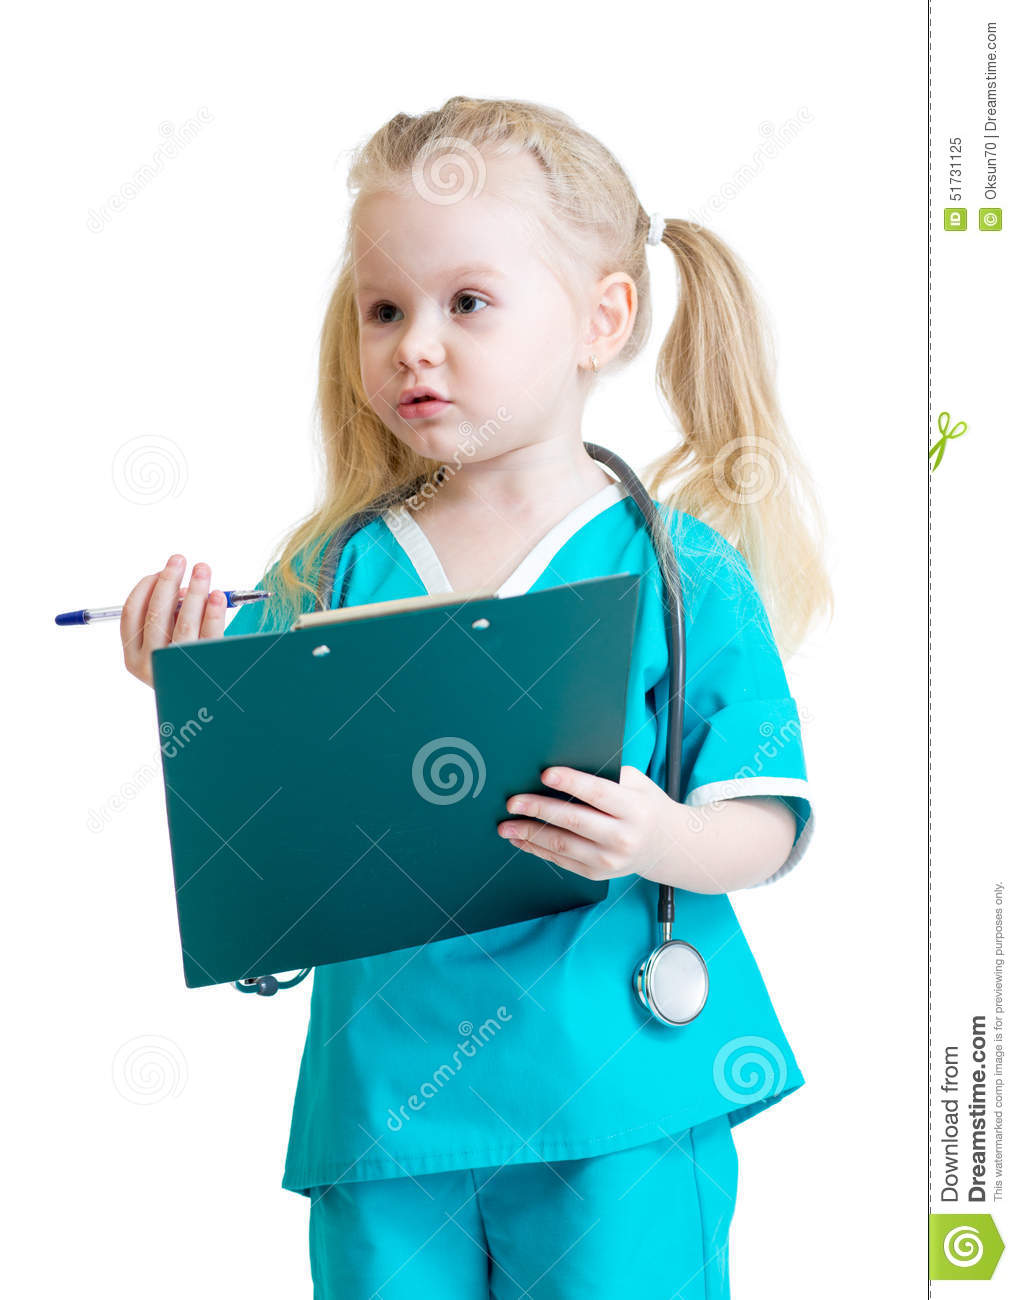 414 Child Nurse Costume Photos Free Royalty Free Stock Photos From Dreamstime